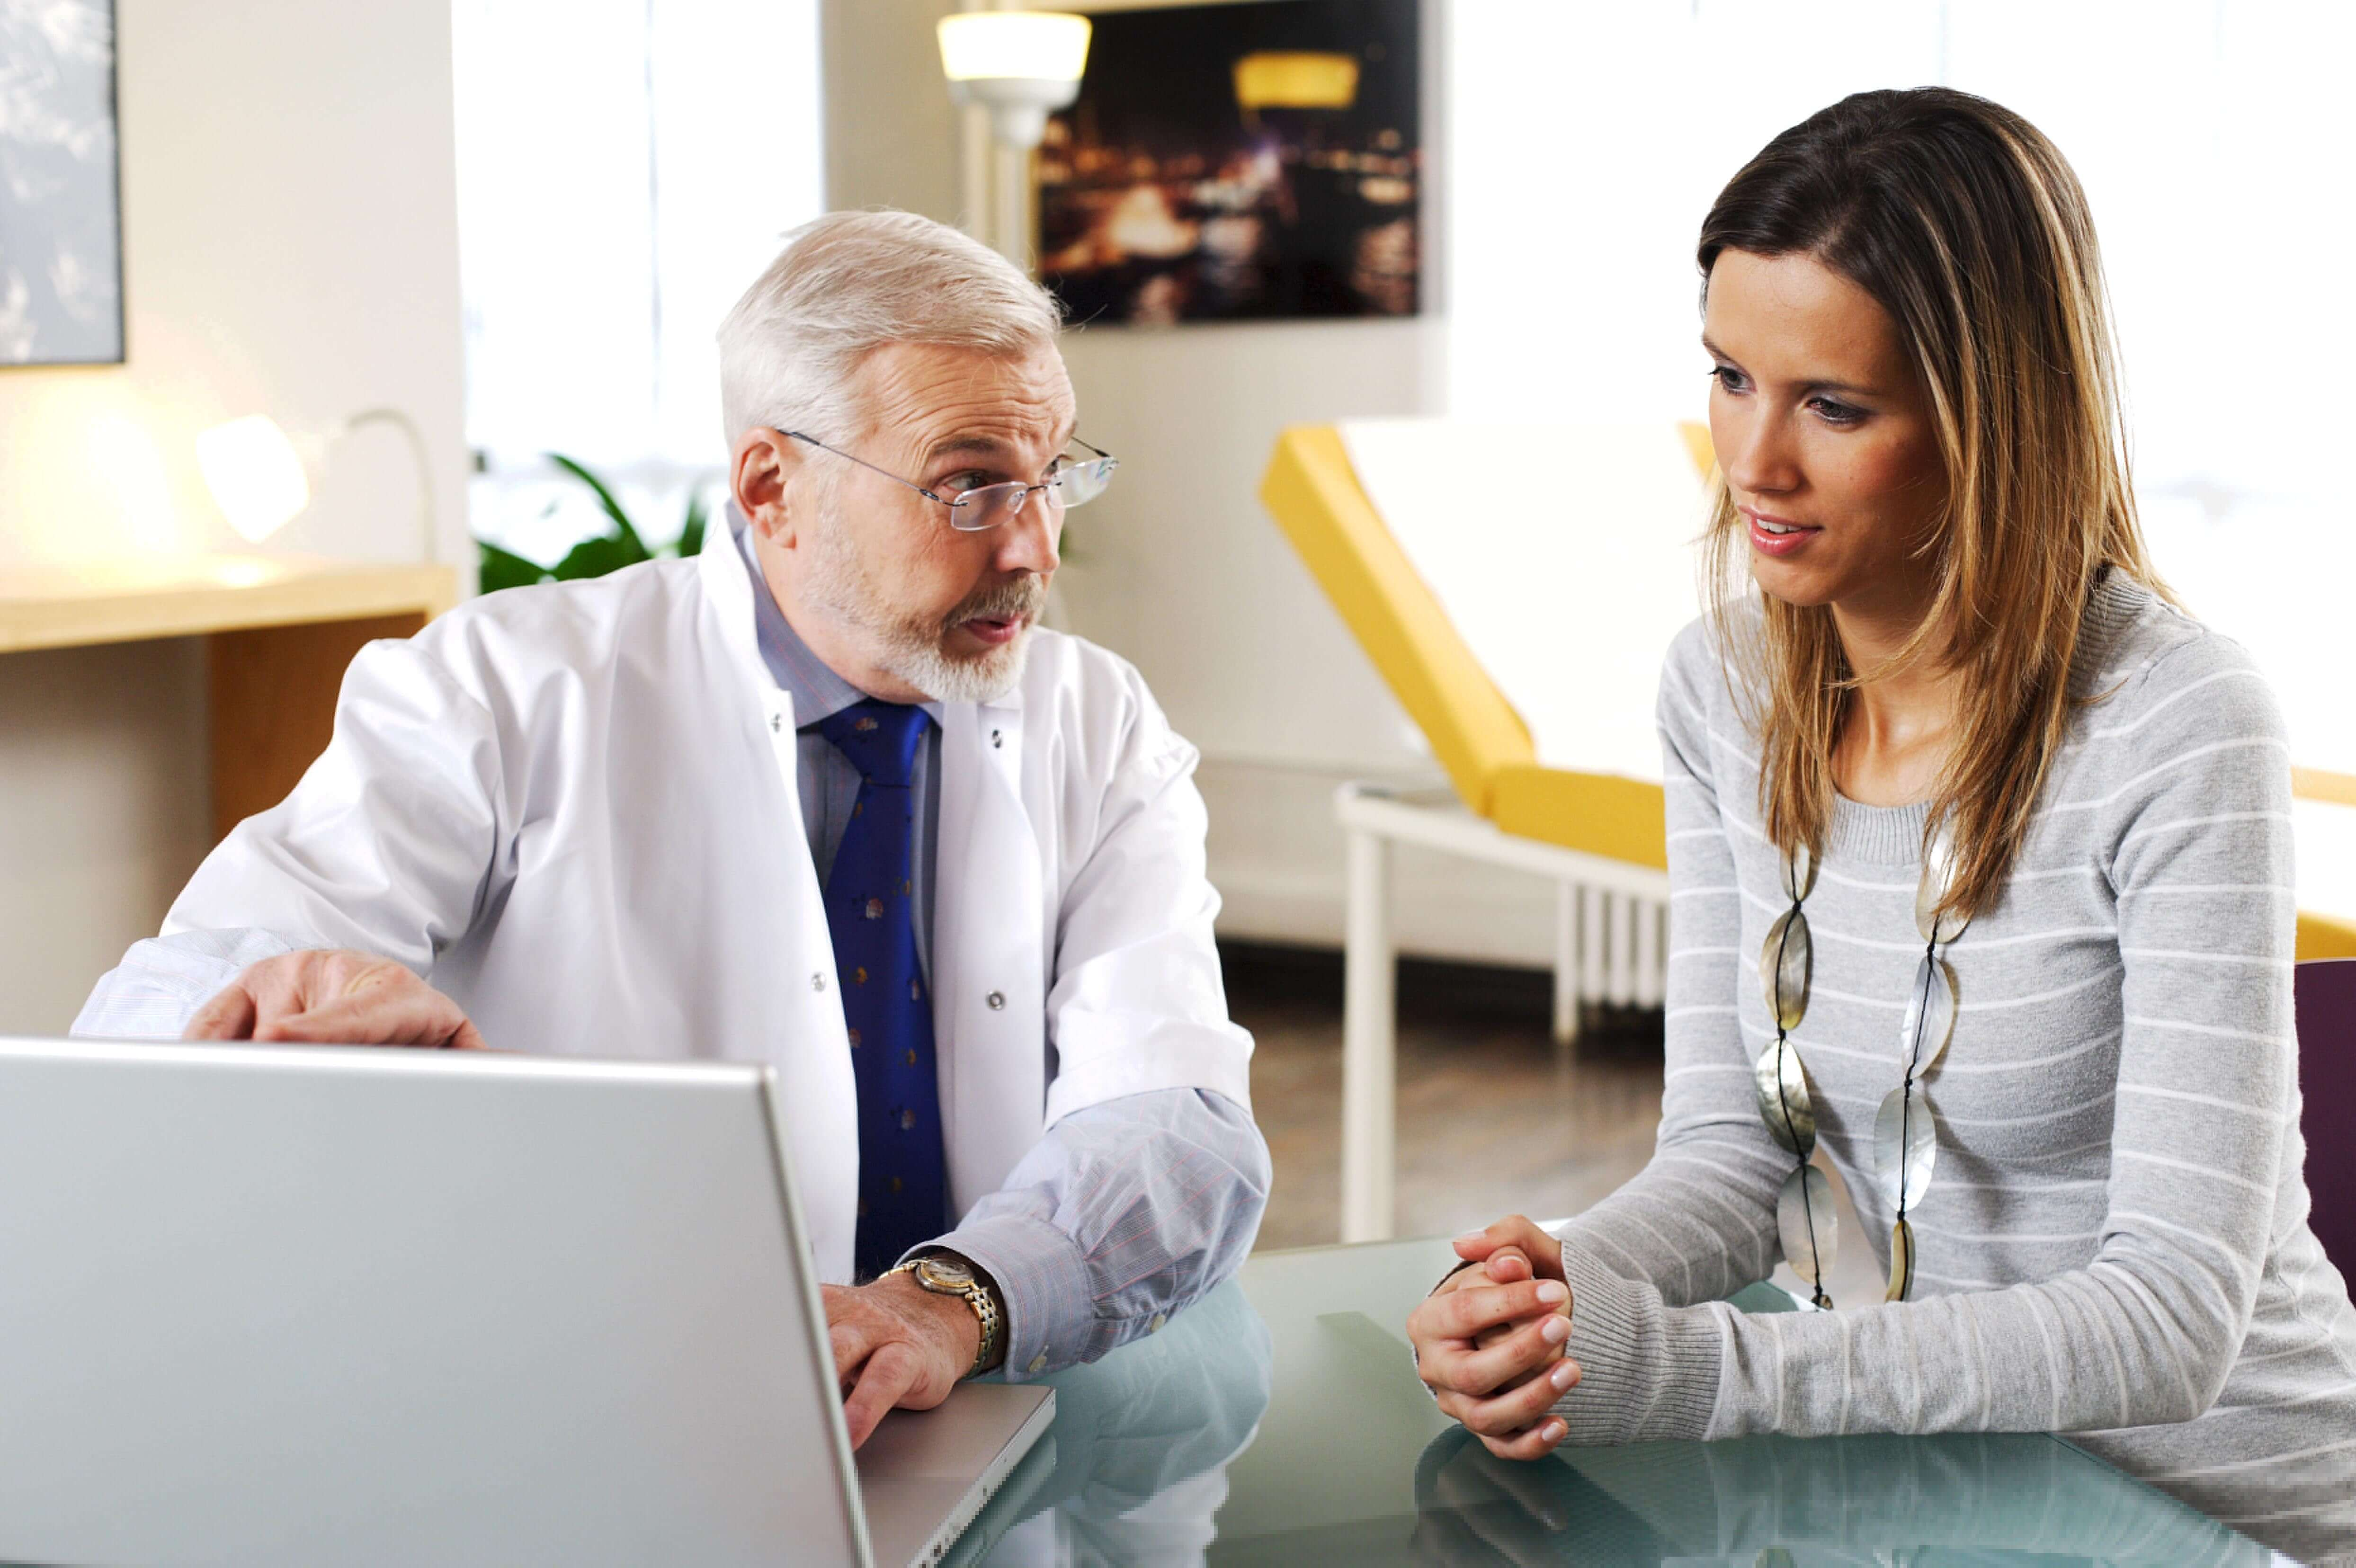 Do Electronic Health Records Distract Doctors?